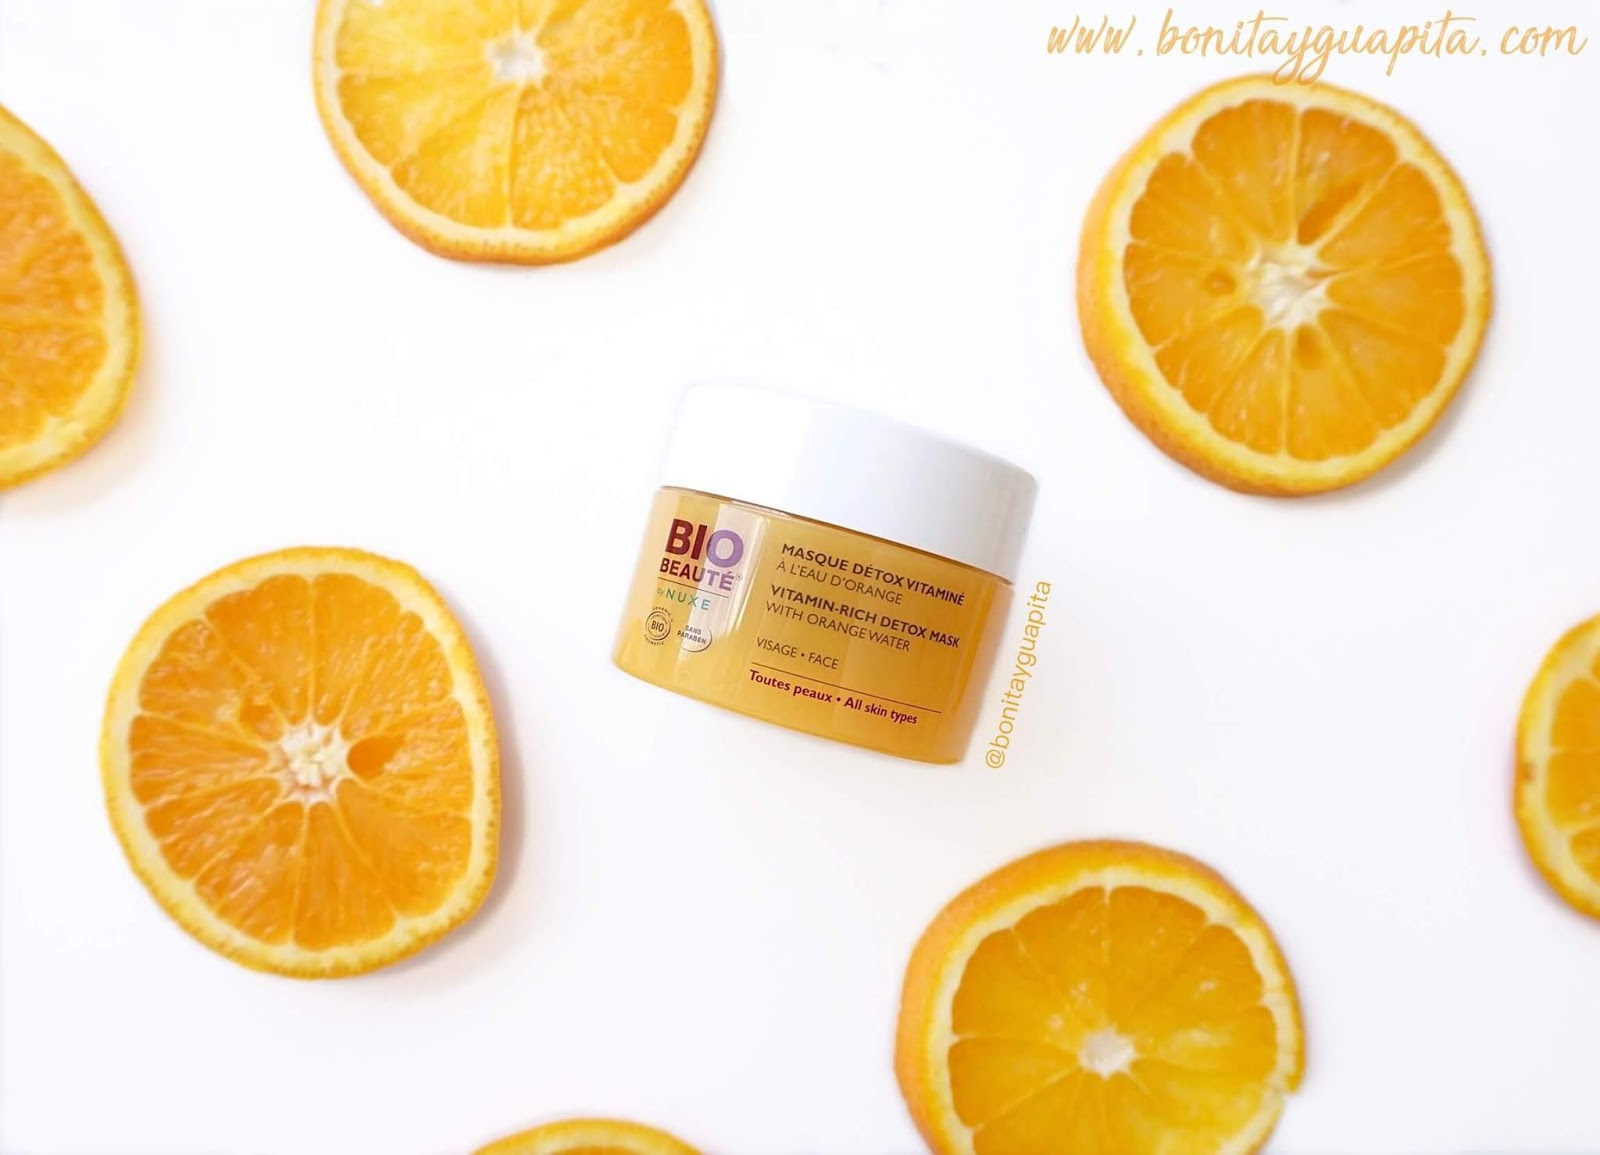 Mascarilla Detox Vitaminada BIO BEAUTÉ by NUXE